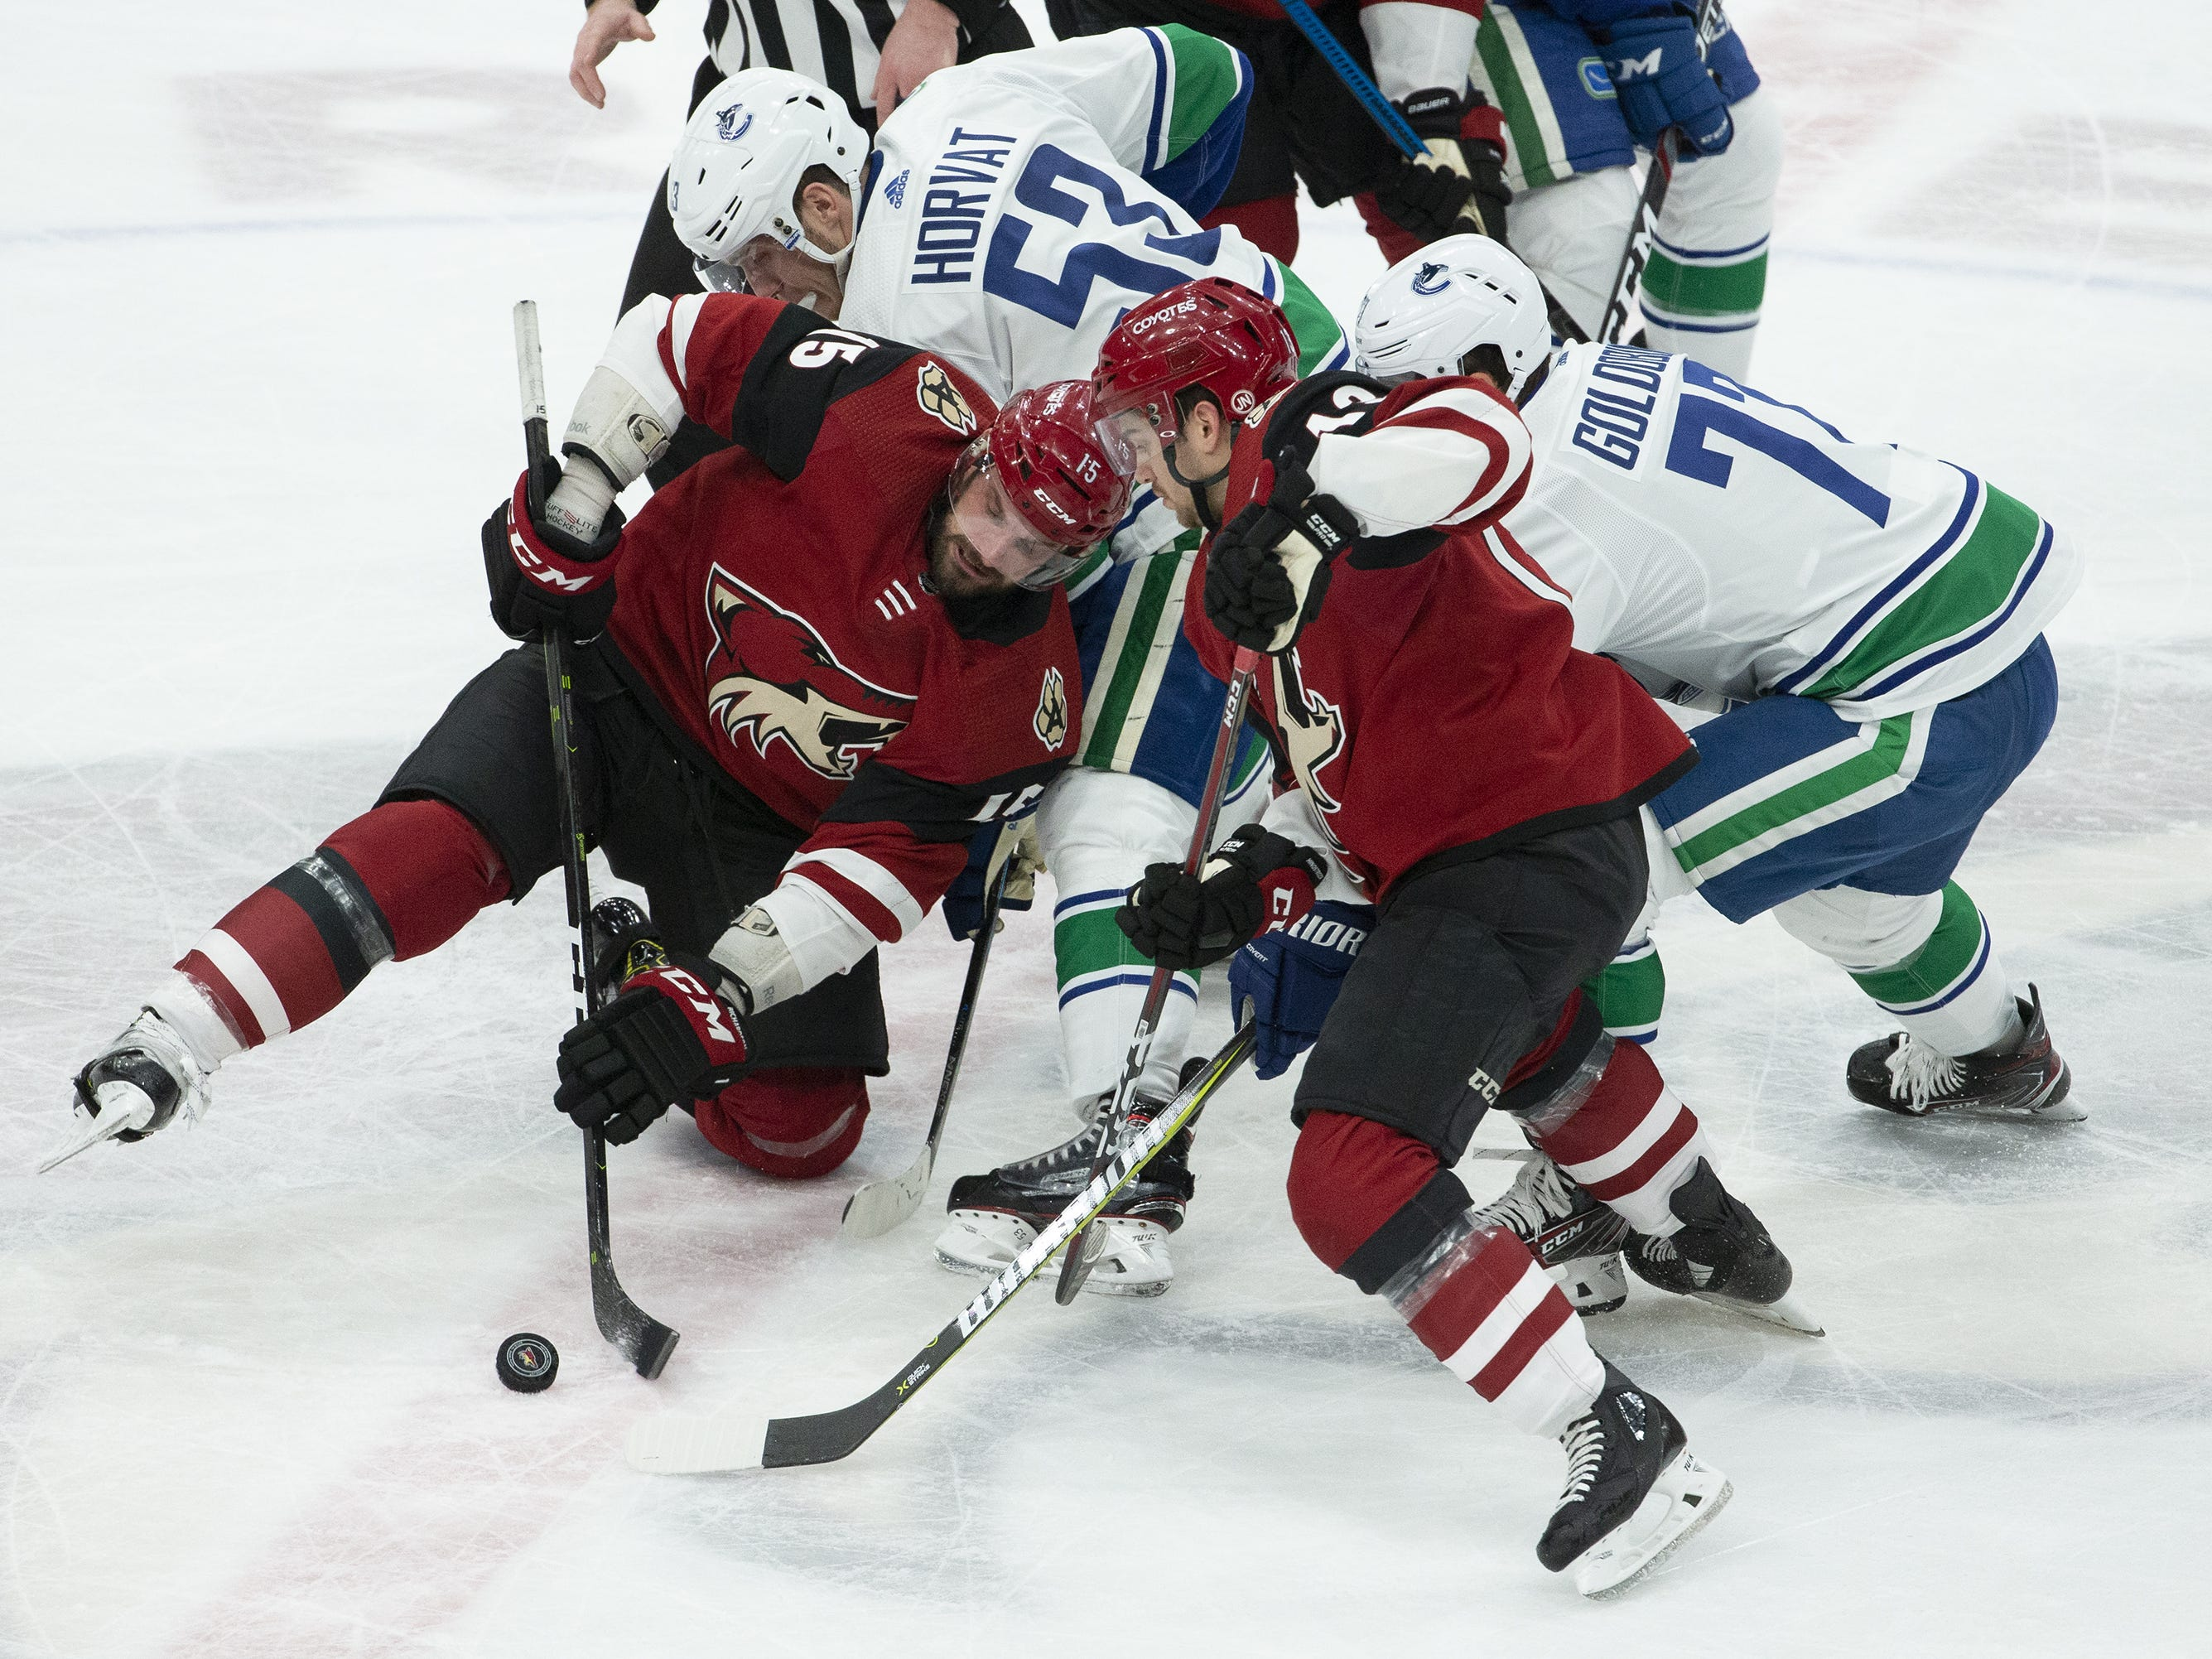 Arizona Coyotes center Brad Richardson (15) and Arizona center Vinnie Hinostroza (13) battle Vancouver Canucks center Bo Horvat (53) and right wing Nikolay Goldobin (77) for the puck during a NHL game at Gila River Arena in Glendale on February 28.